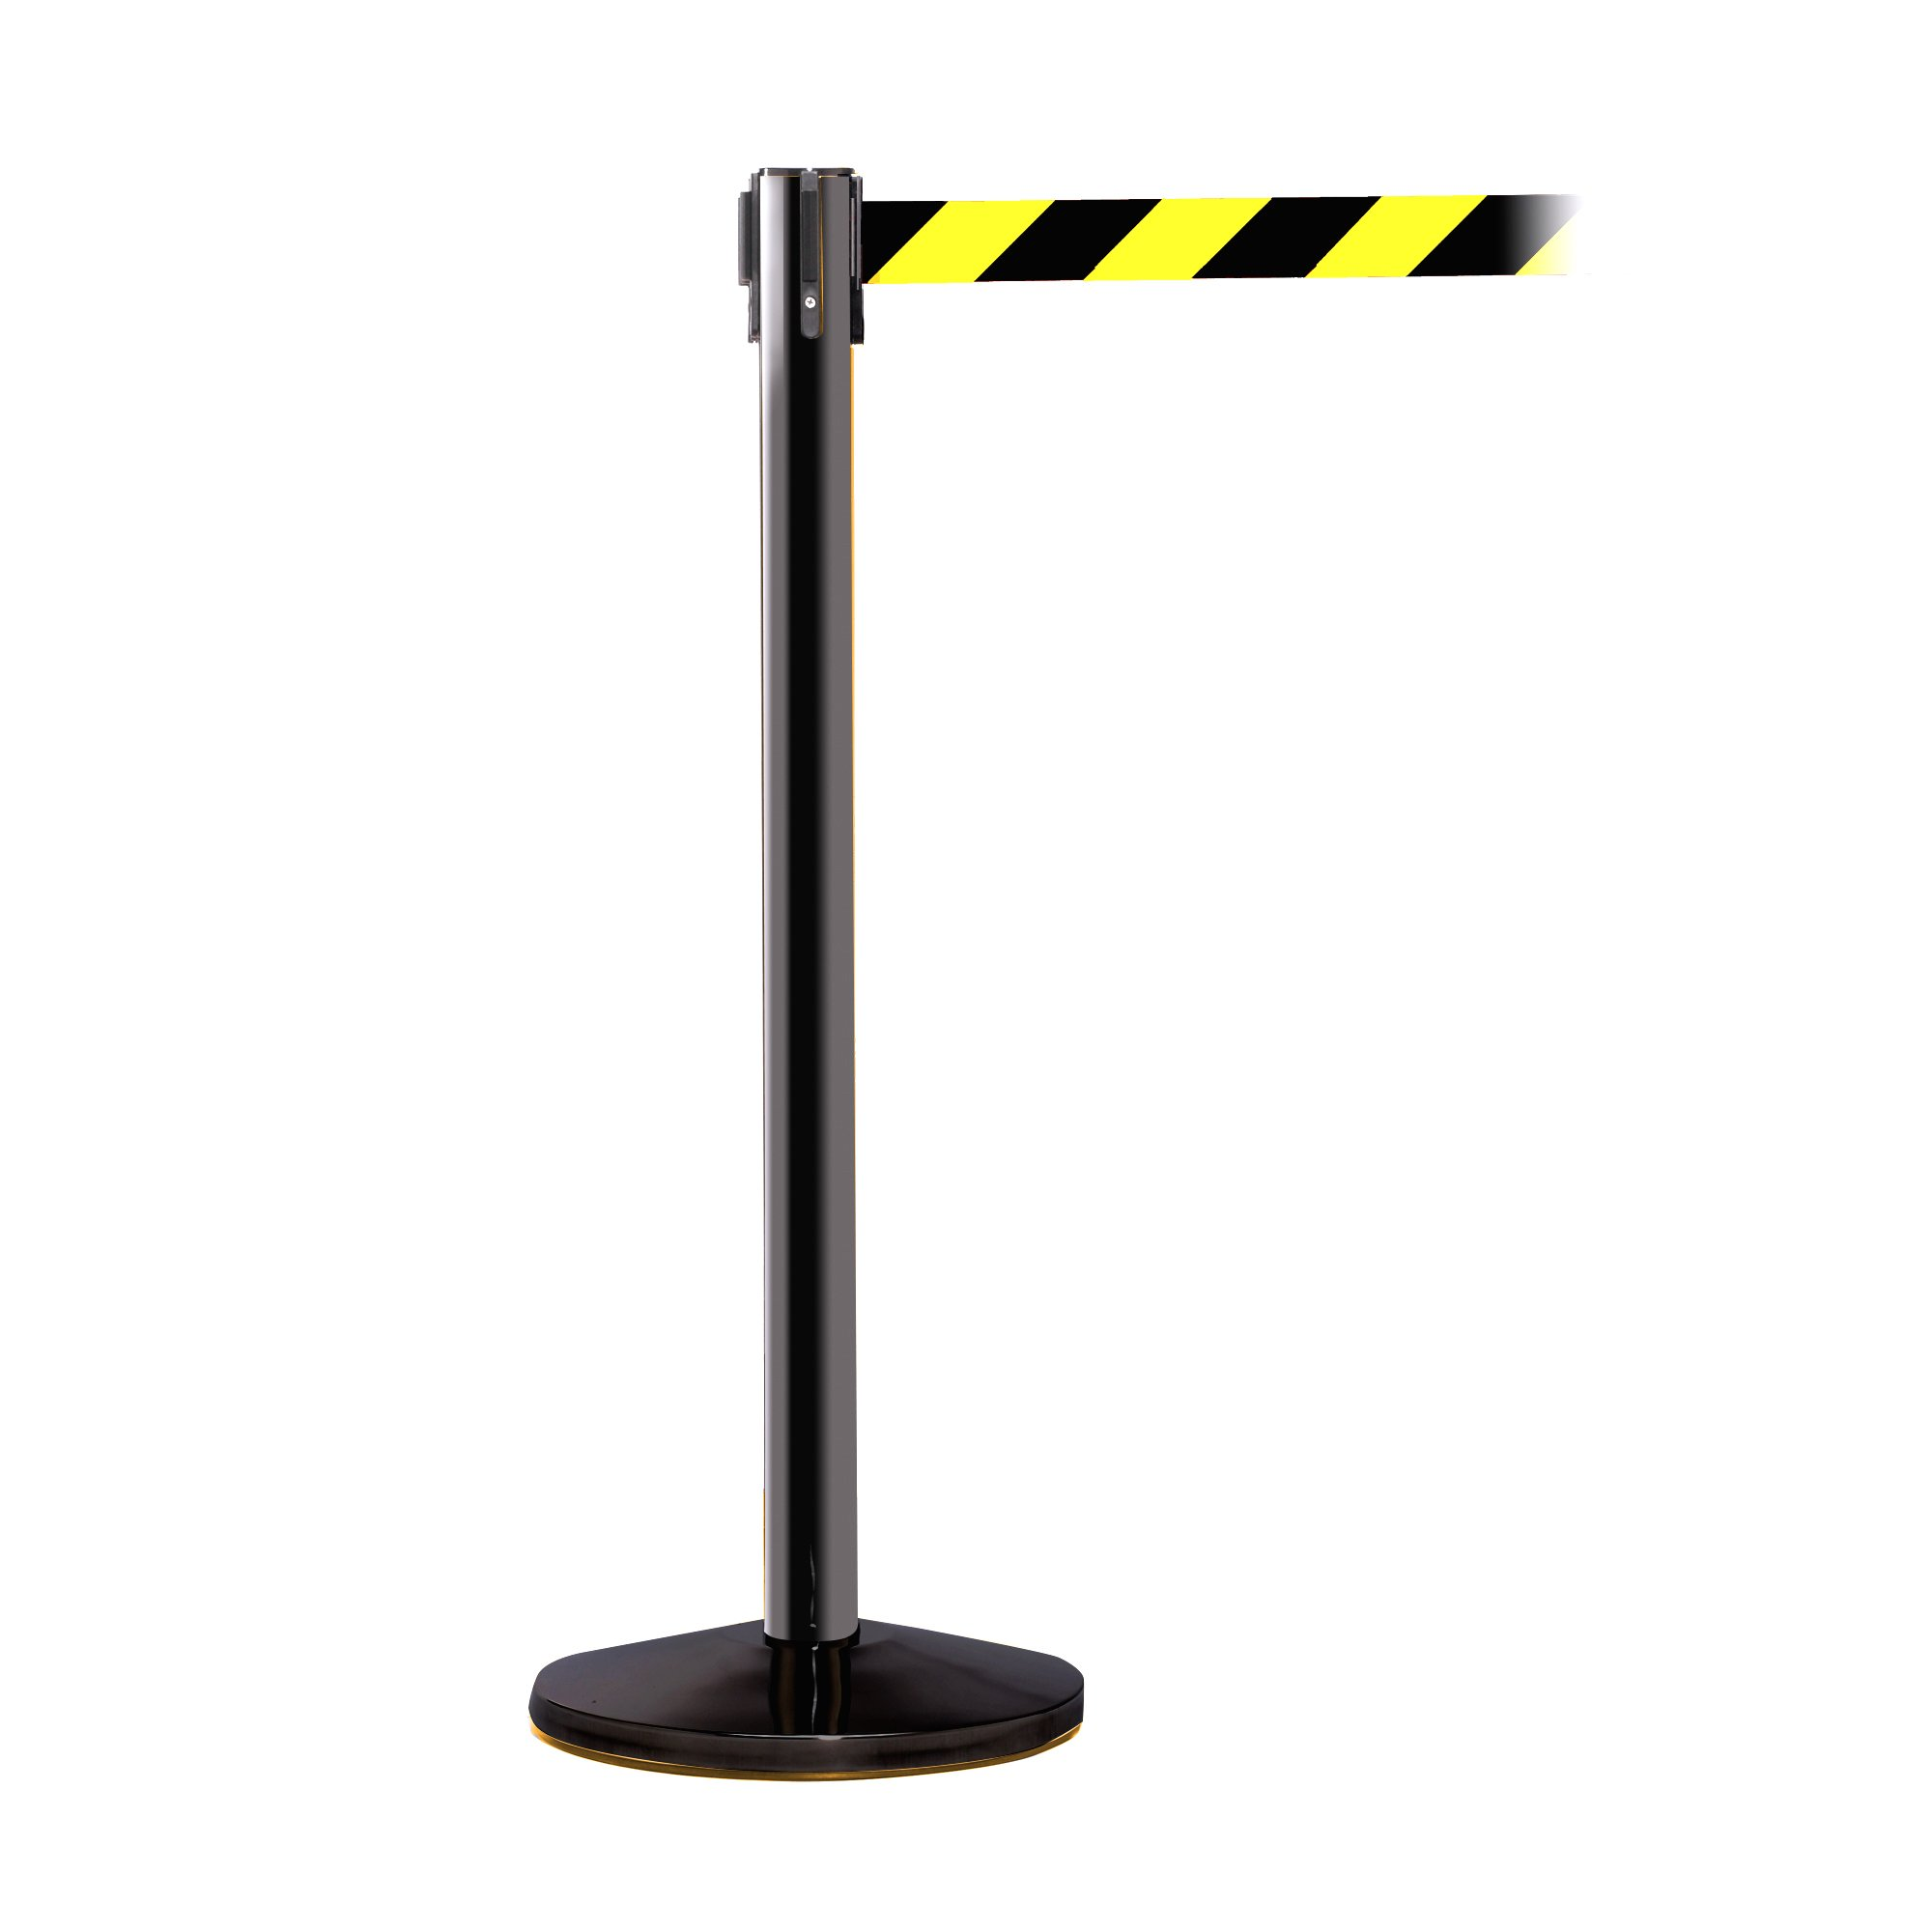 ComeAlong Crowd Control Stanchion Black Anti Scuff Pole with 11' Heavy Duty Diagonally Striped Nylon Belt, Yellow/Black (Pack of 2 Poles)